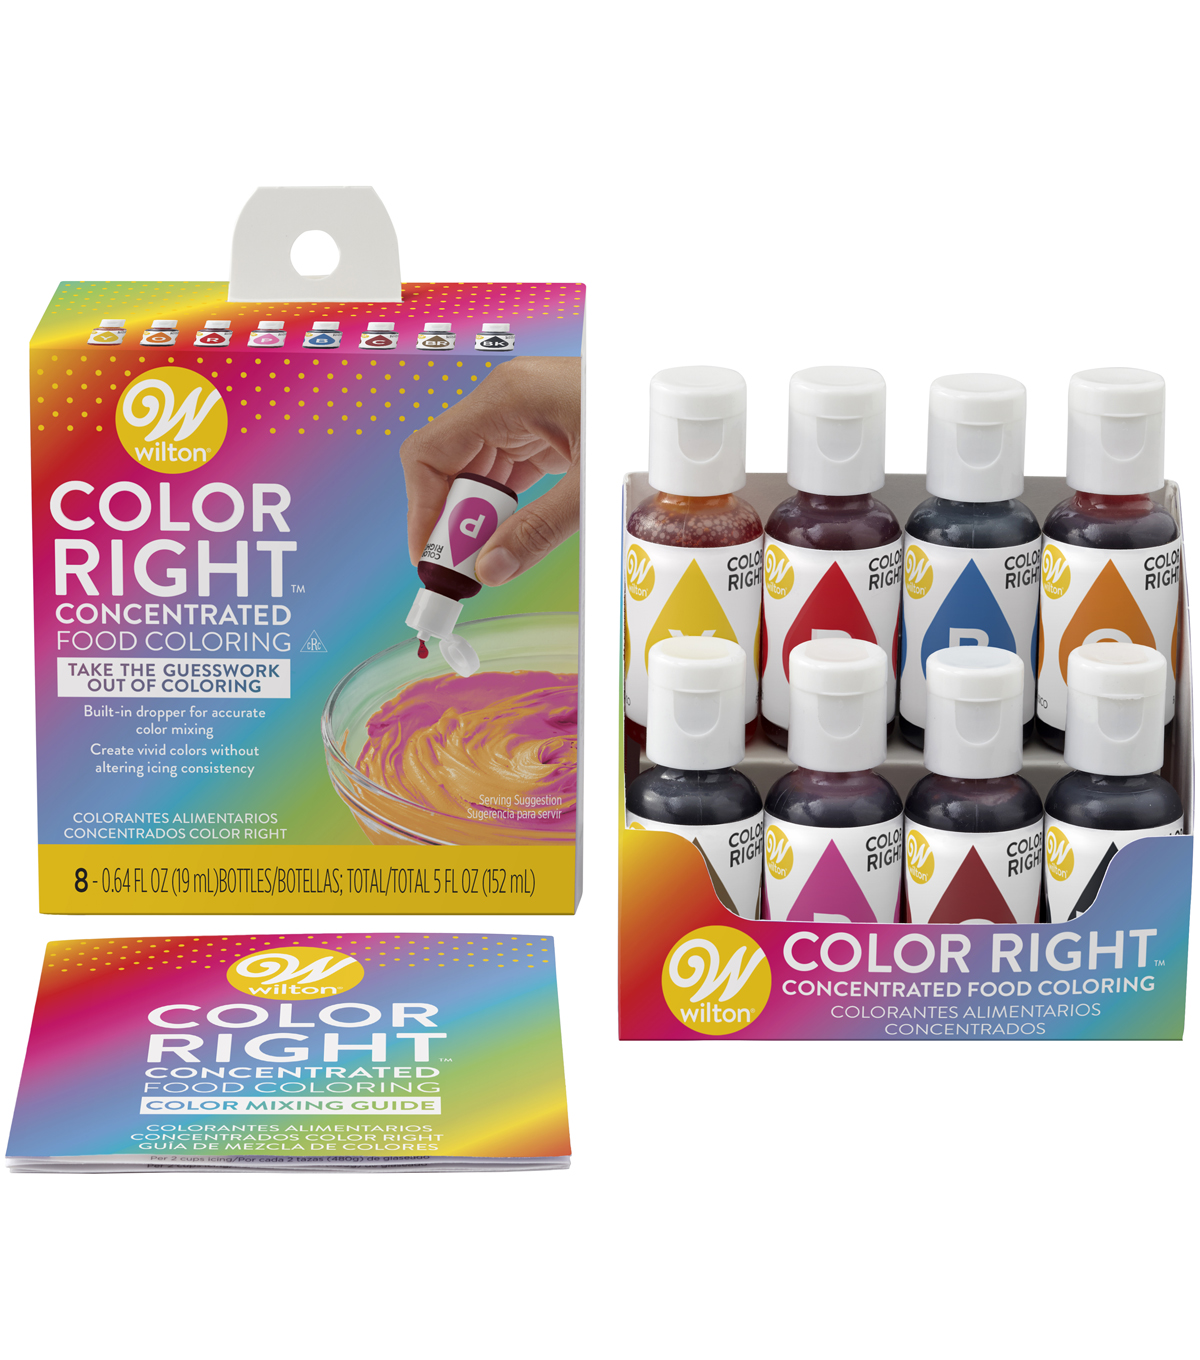 Wilton Color Right Color Formula Guide | JOANN